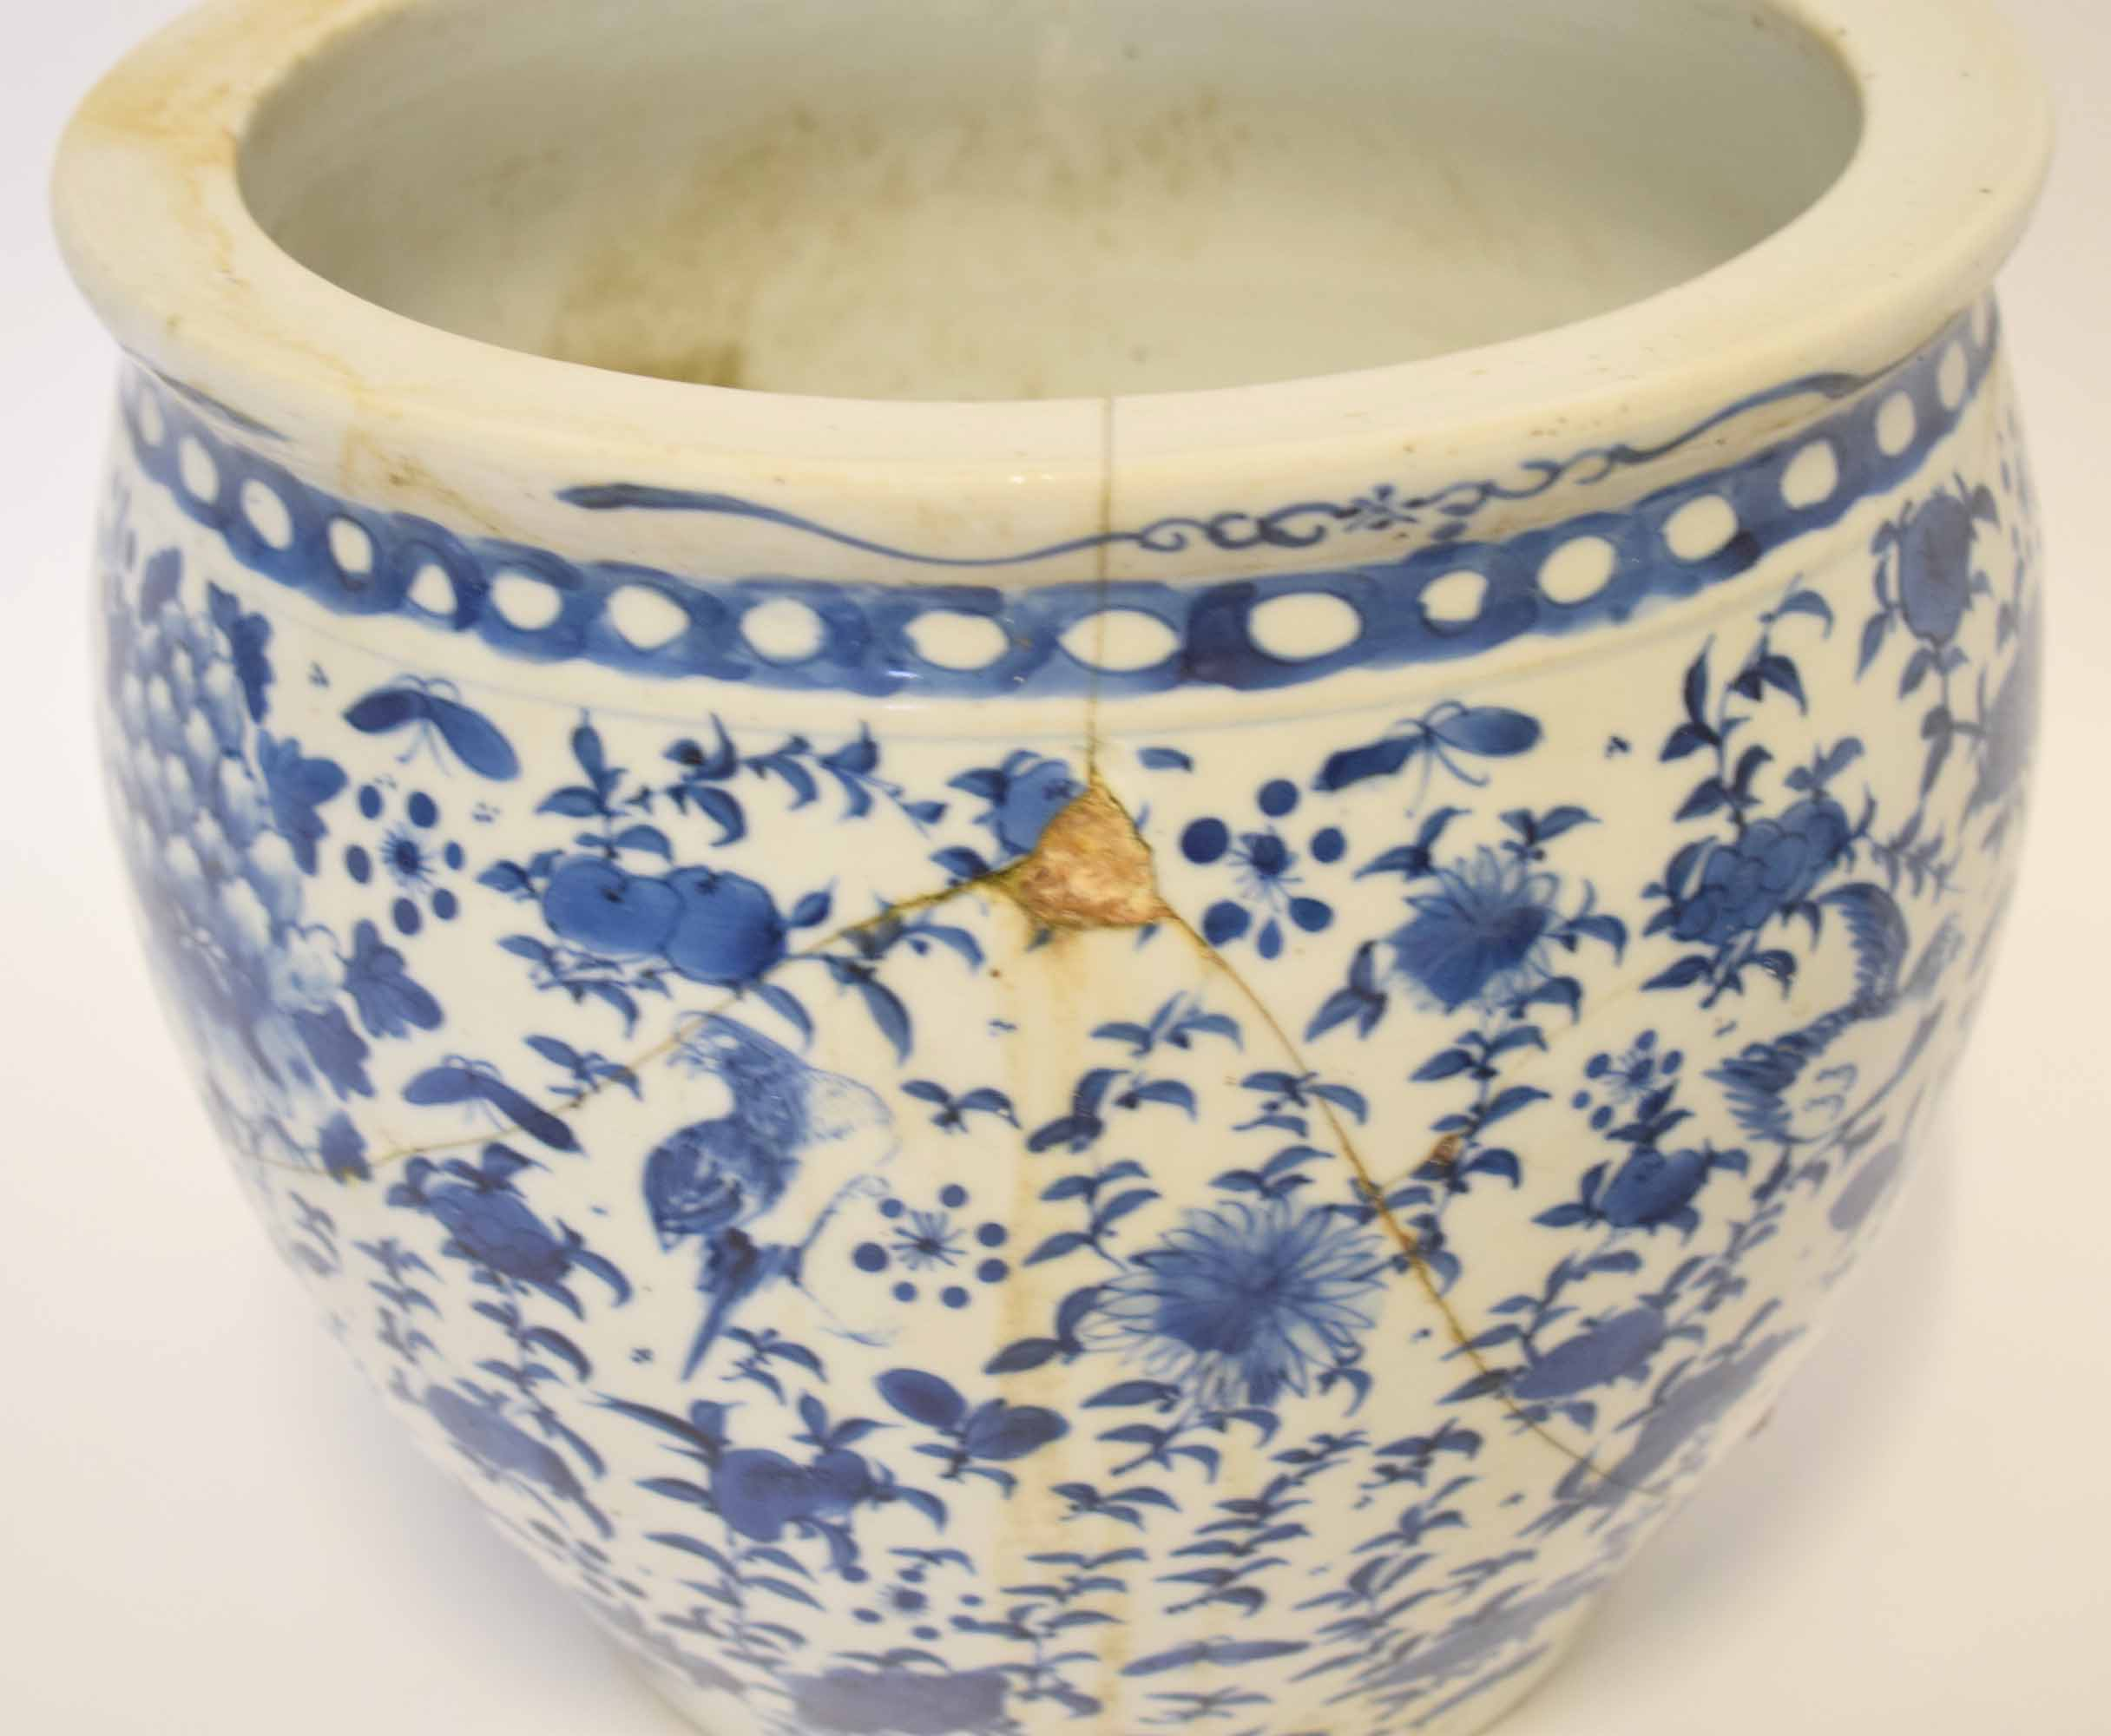 Lot 24 - Chinese porcelain large dish with blue and white design of birds amongst foliage and rock work